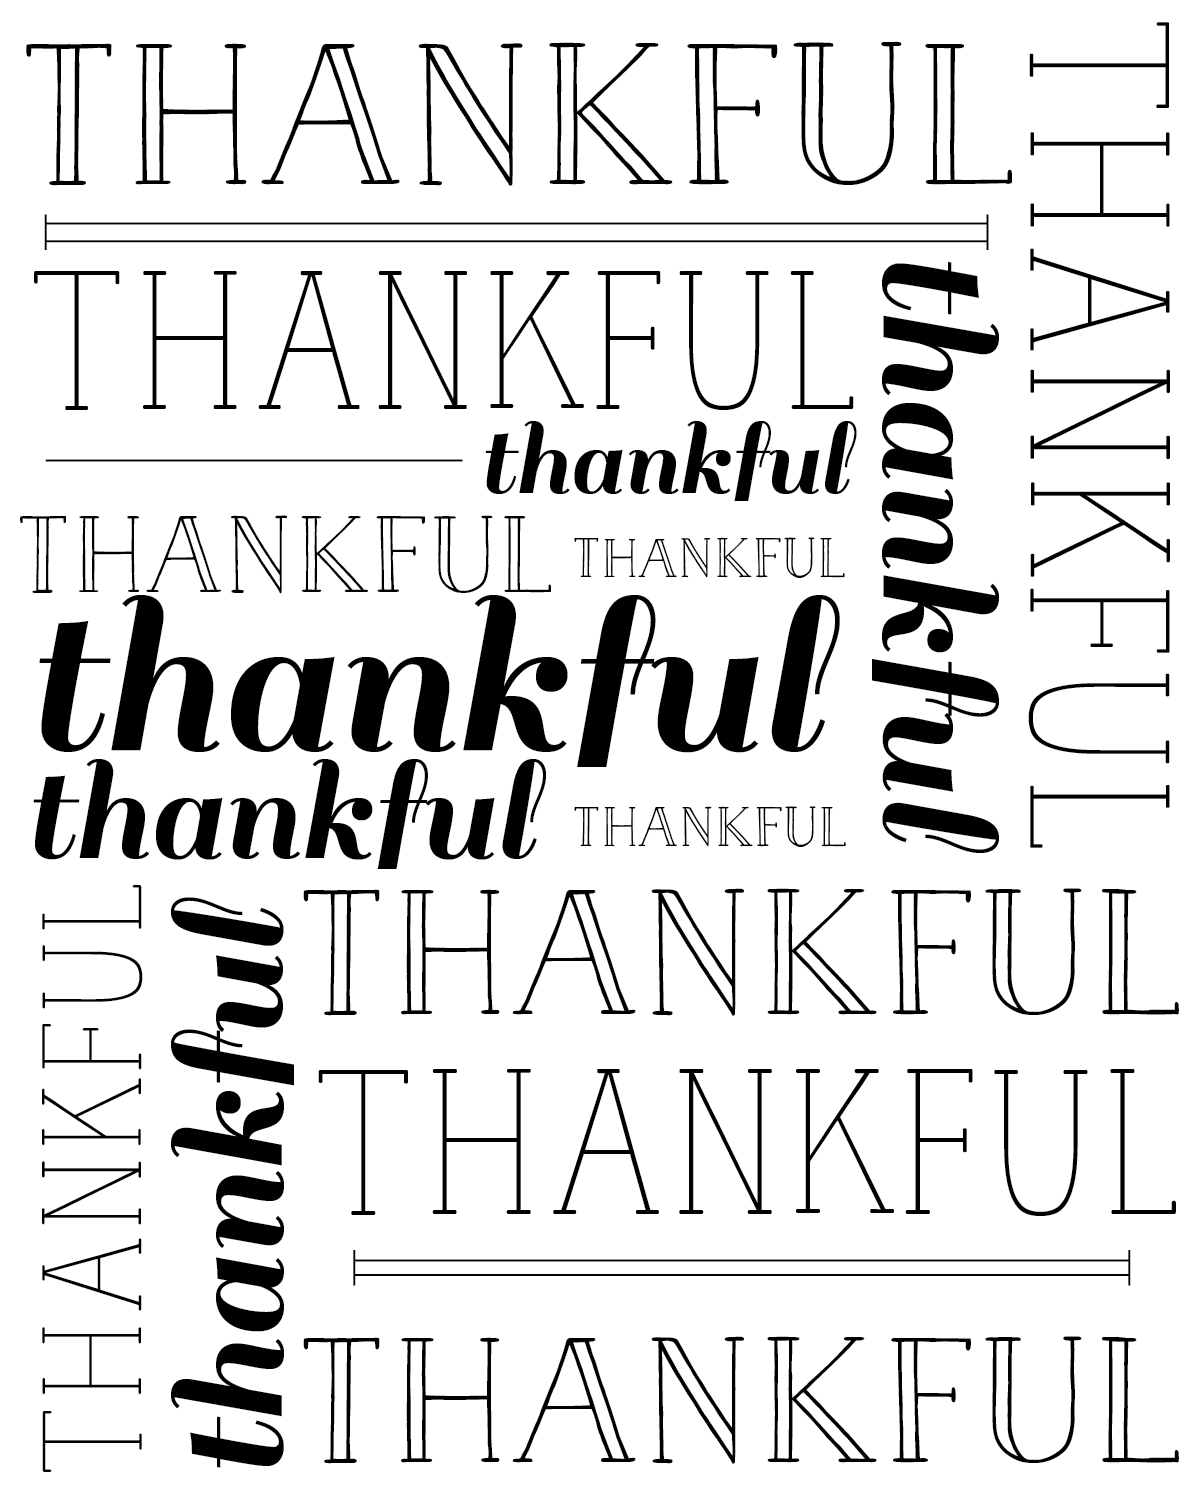 Today I Am Thankful Free Printables